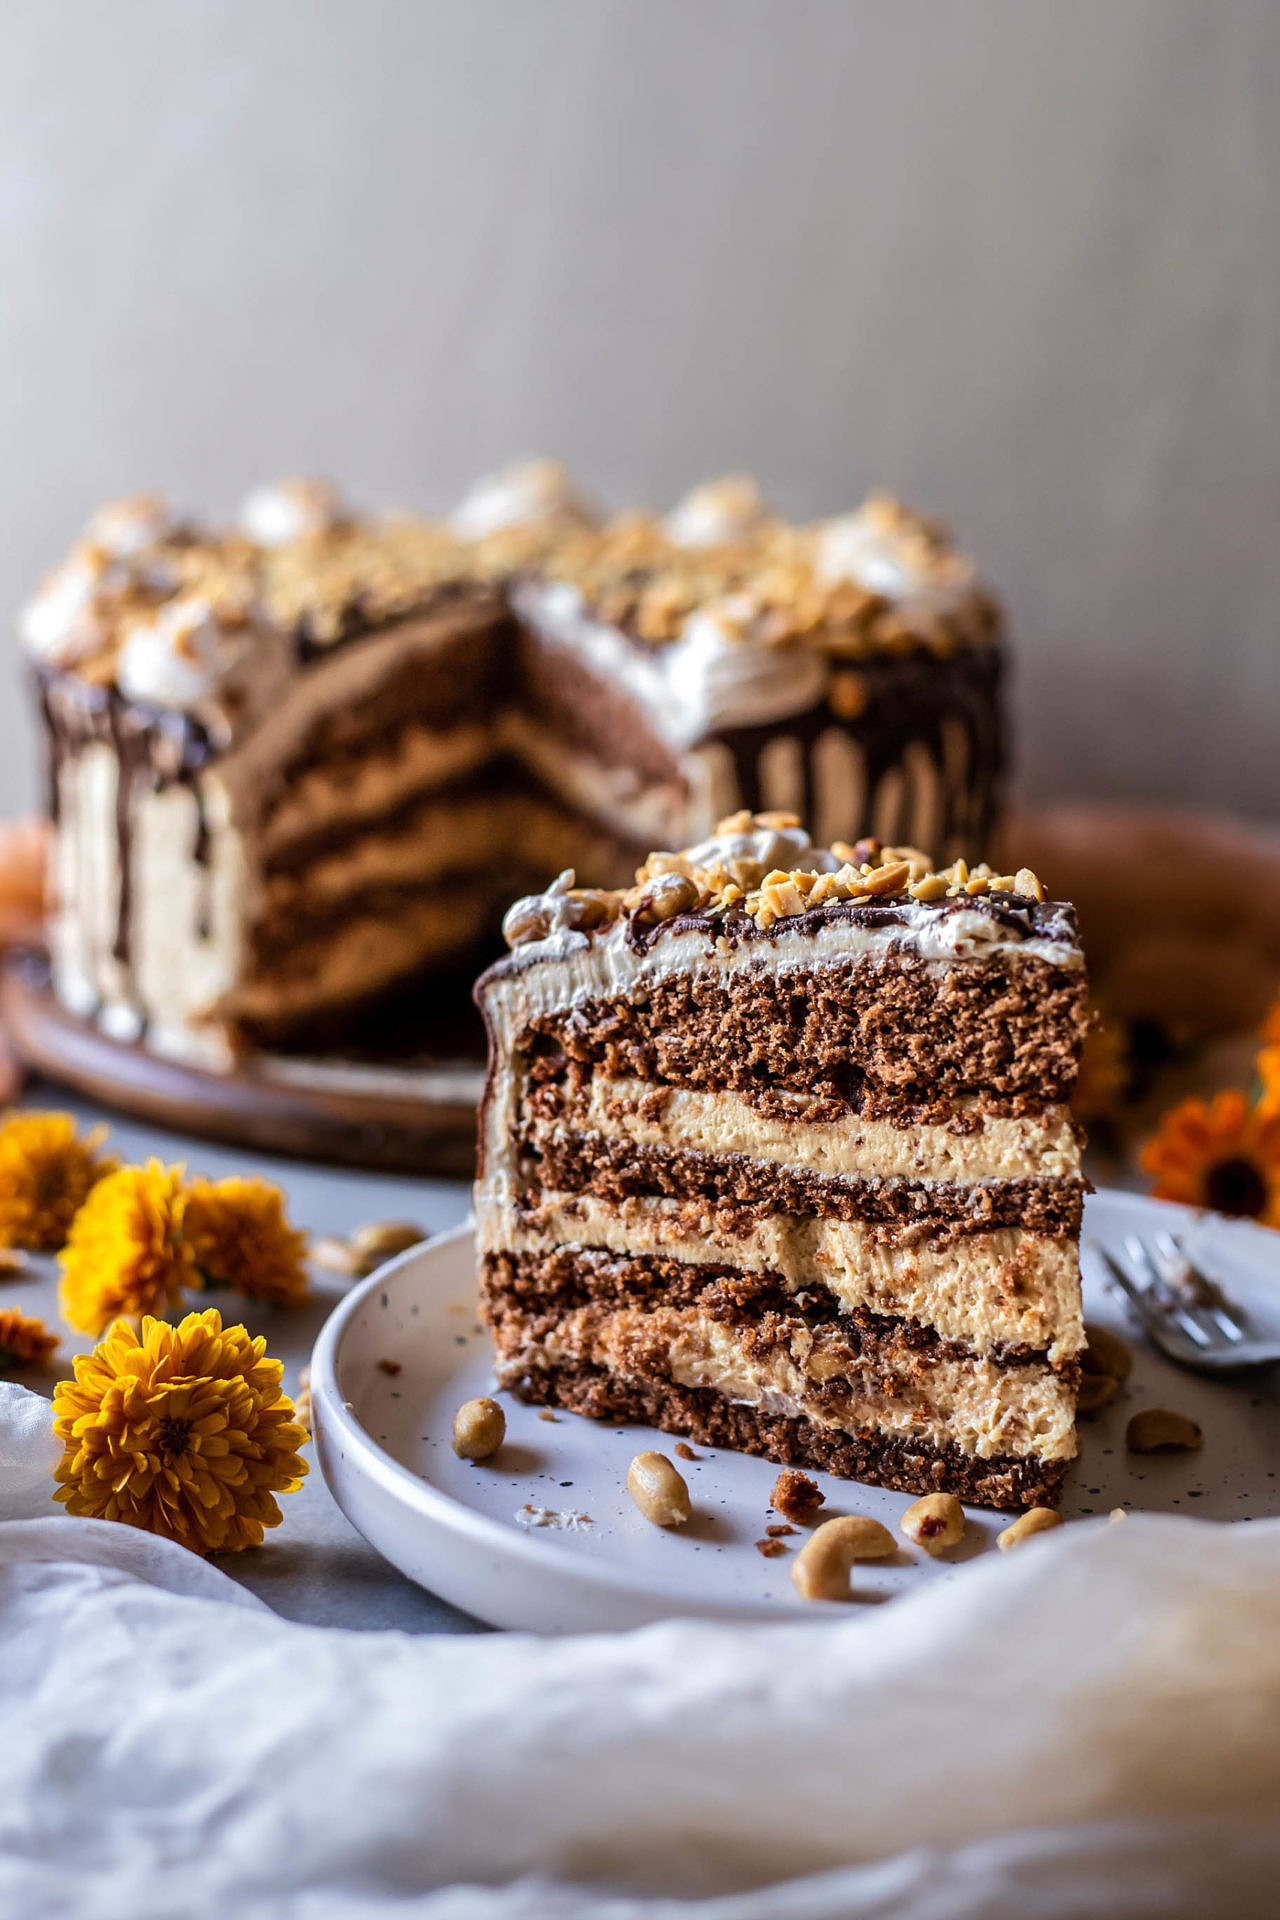 This gluten-free chocolate peanut butter cake is perfectly sweetened, moist, soft, super chocolaty, peanut butter infused, rich, flavorful and so delicious!